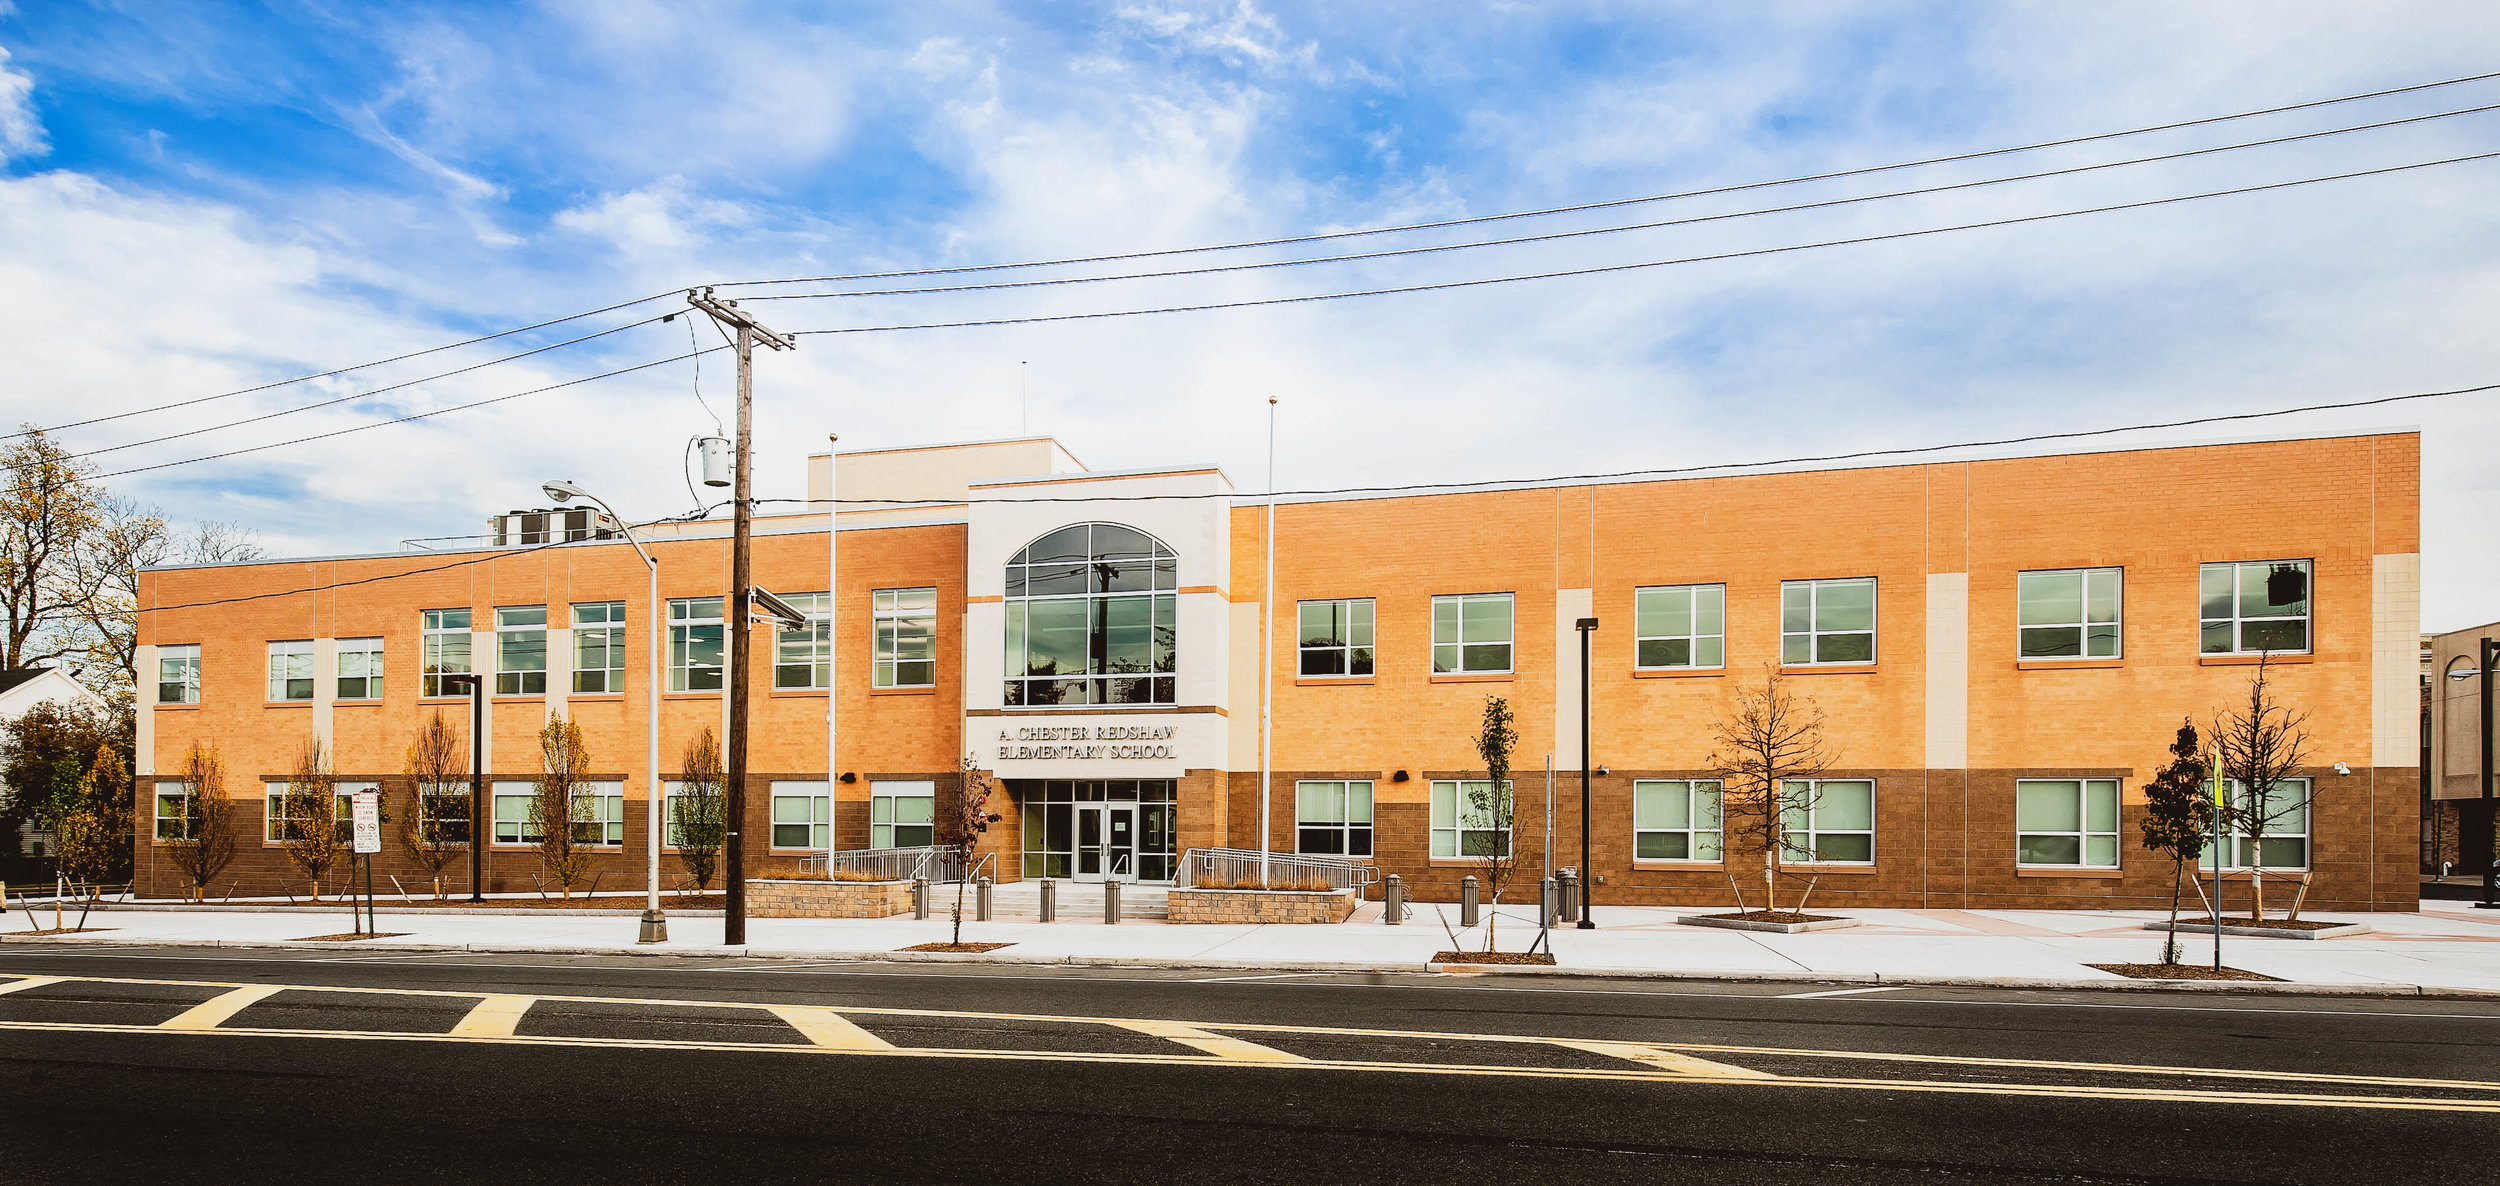 A. Chester Redshaw Elementary Design-Build School, New Brunswick, NJ